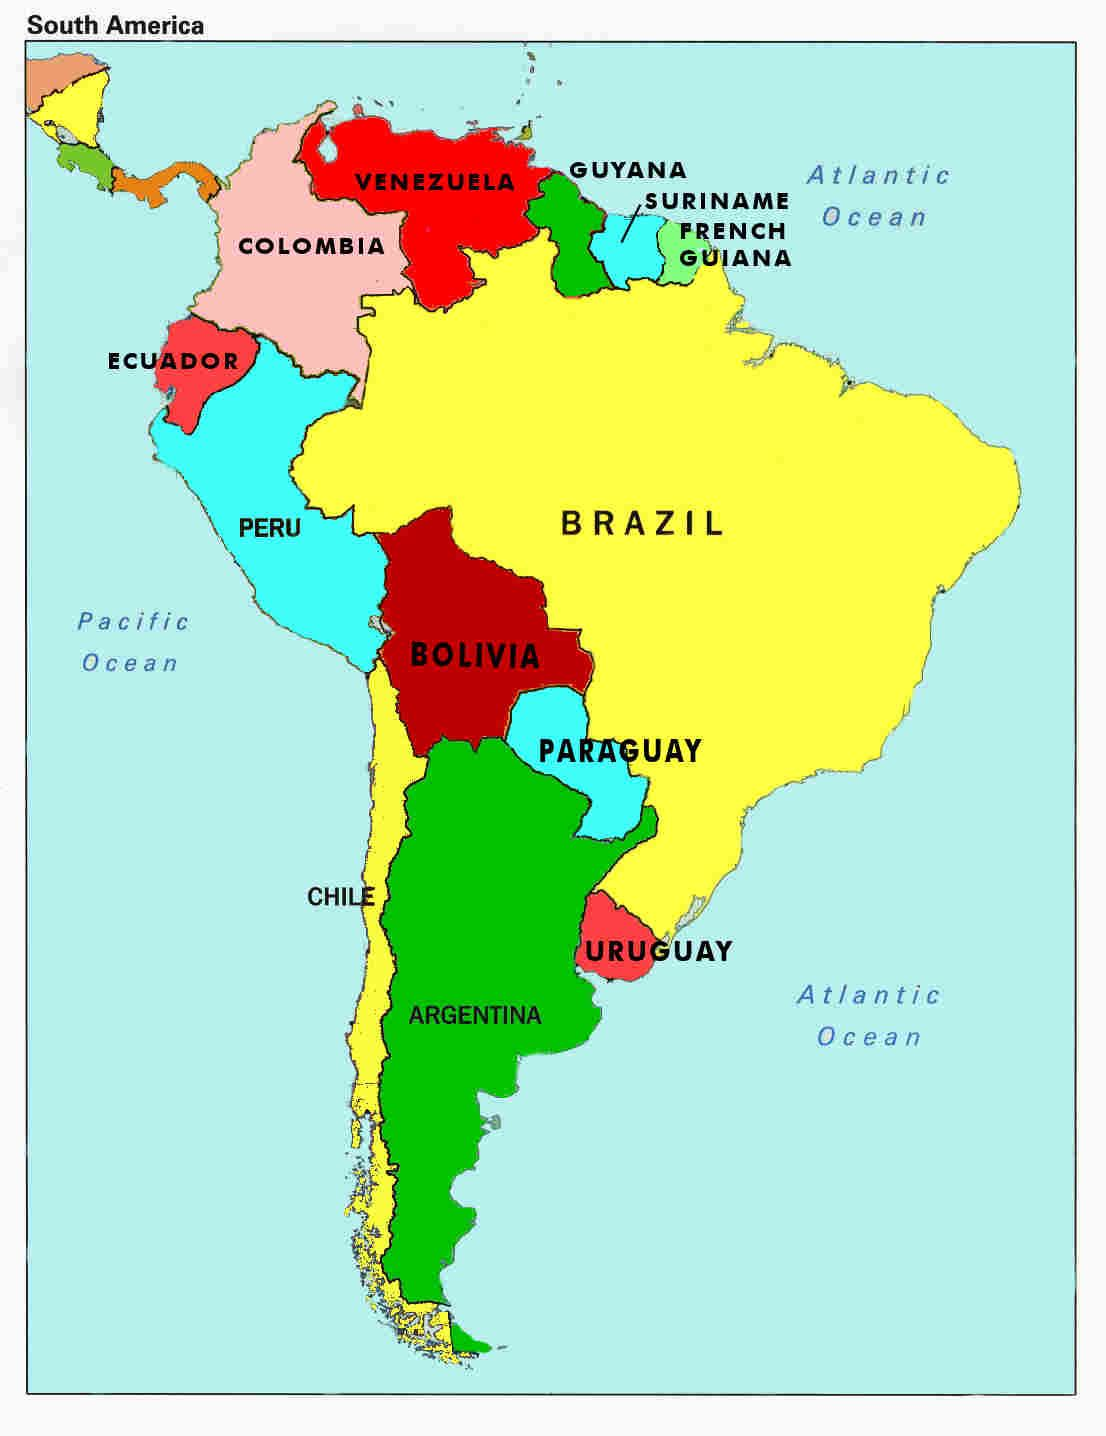 South America Single States Map With Capitals National Borders - Us map with south